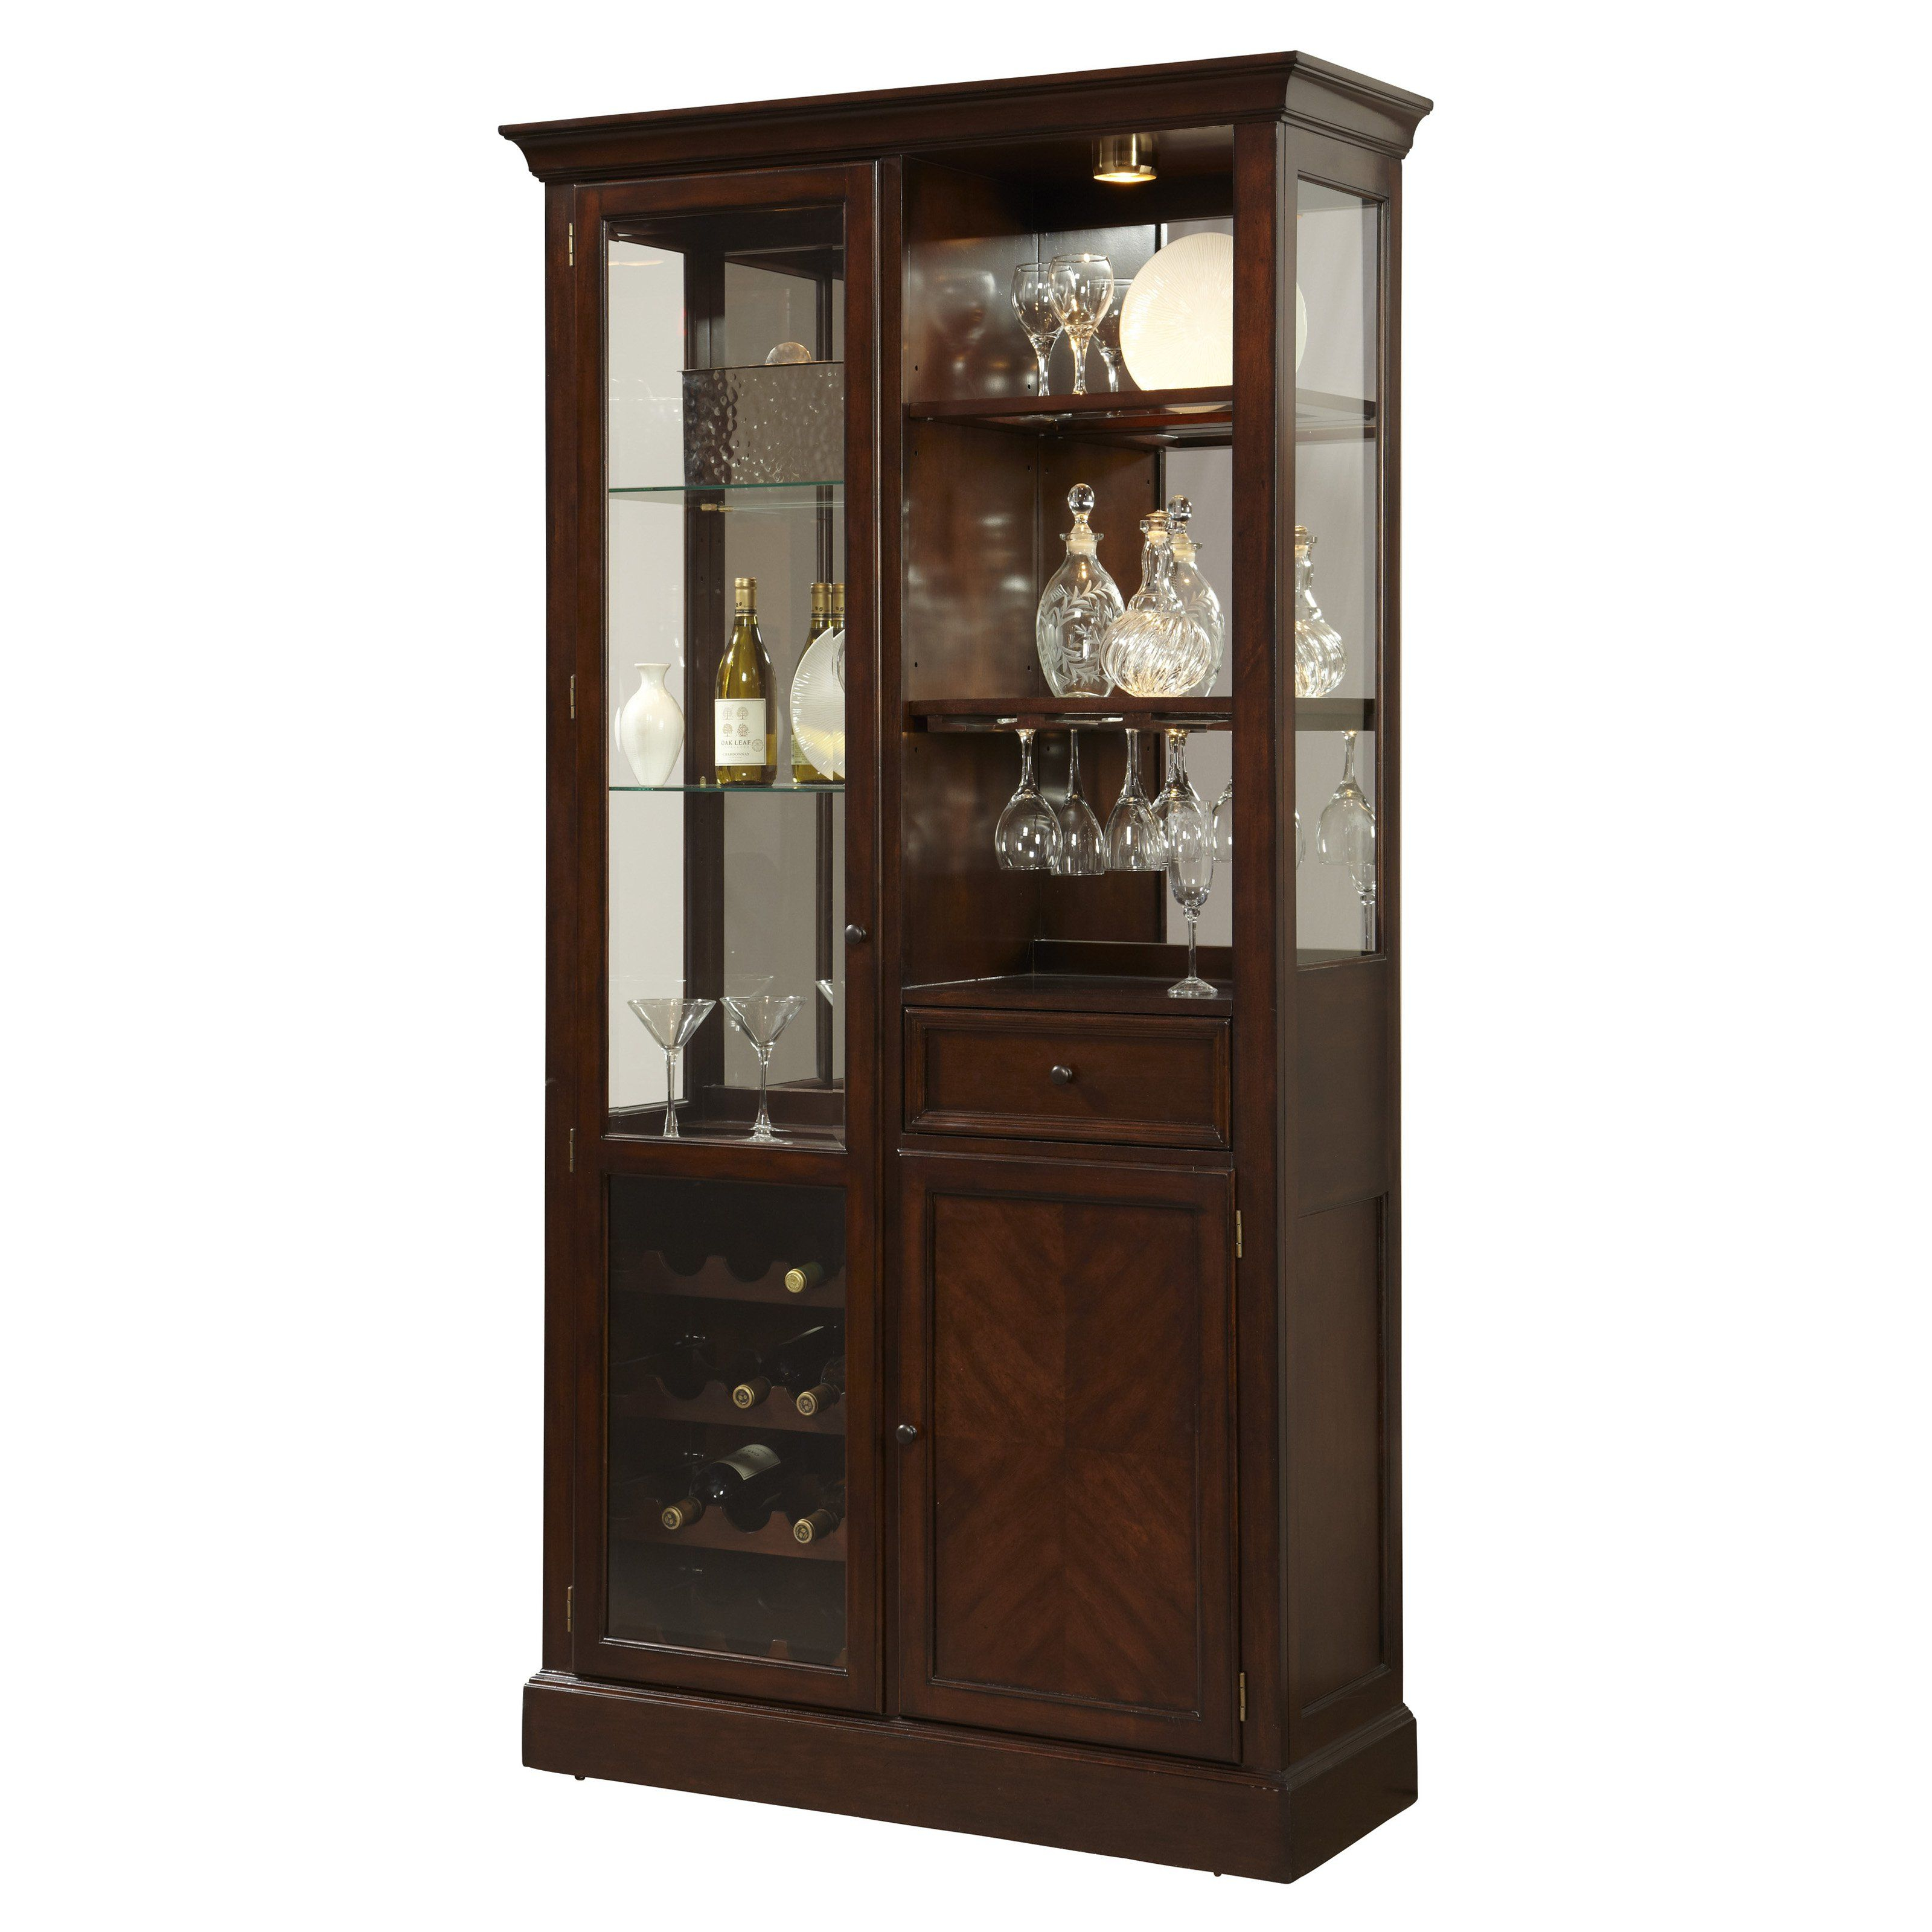 Have To Have It Pulaski Dark Wood Curio Bar Cabinet within sizing 3200 X 3200